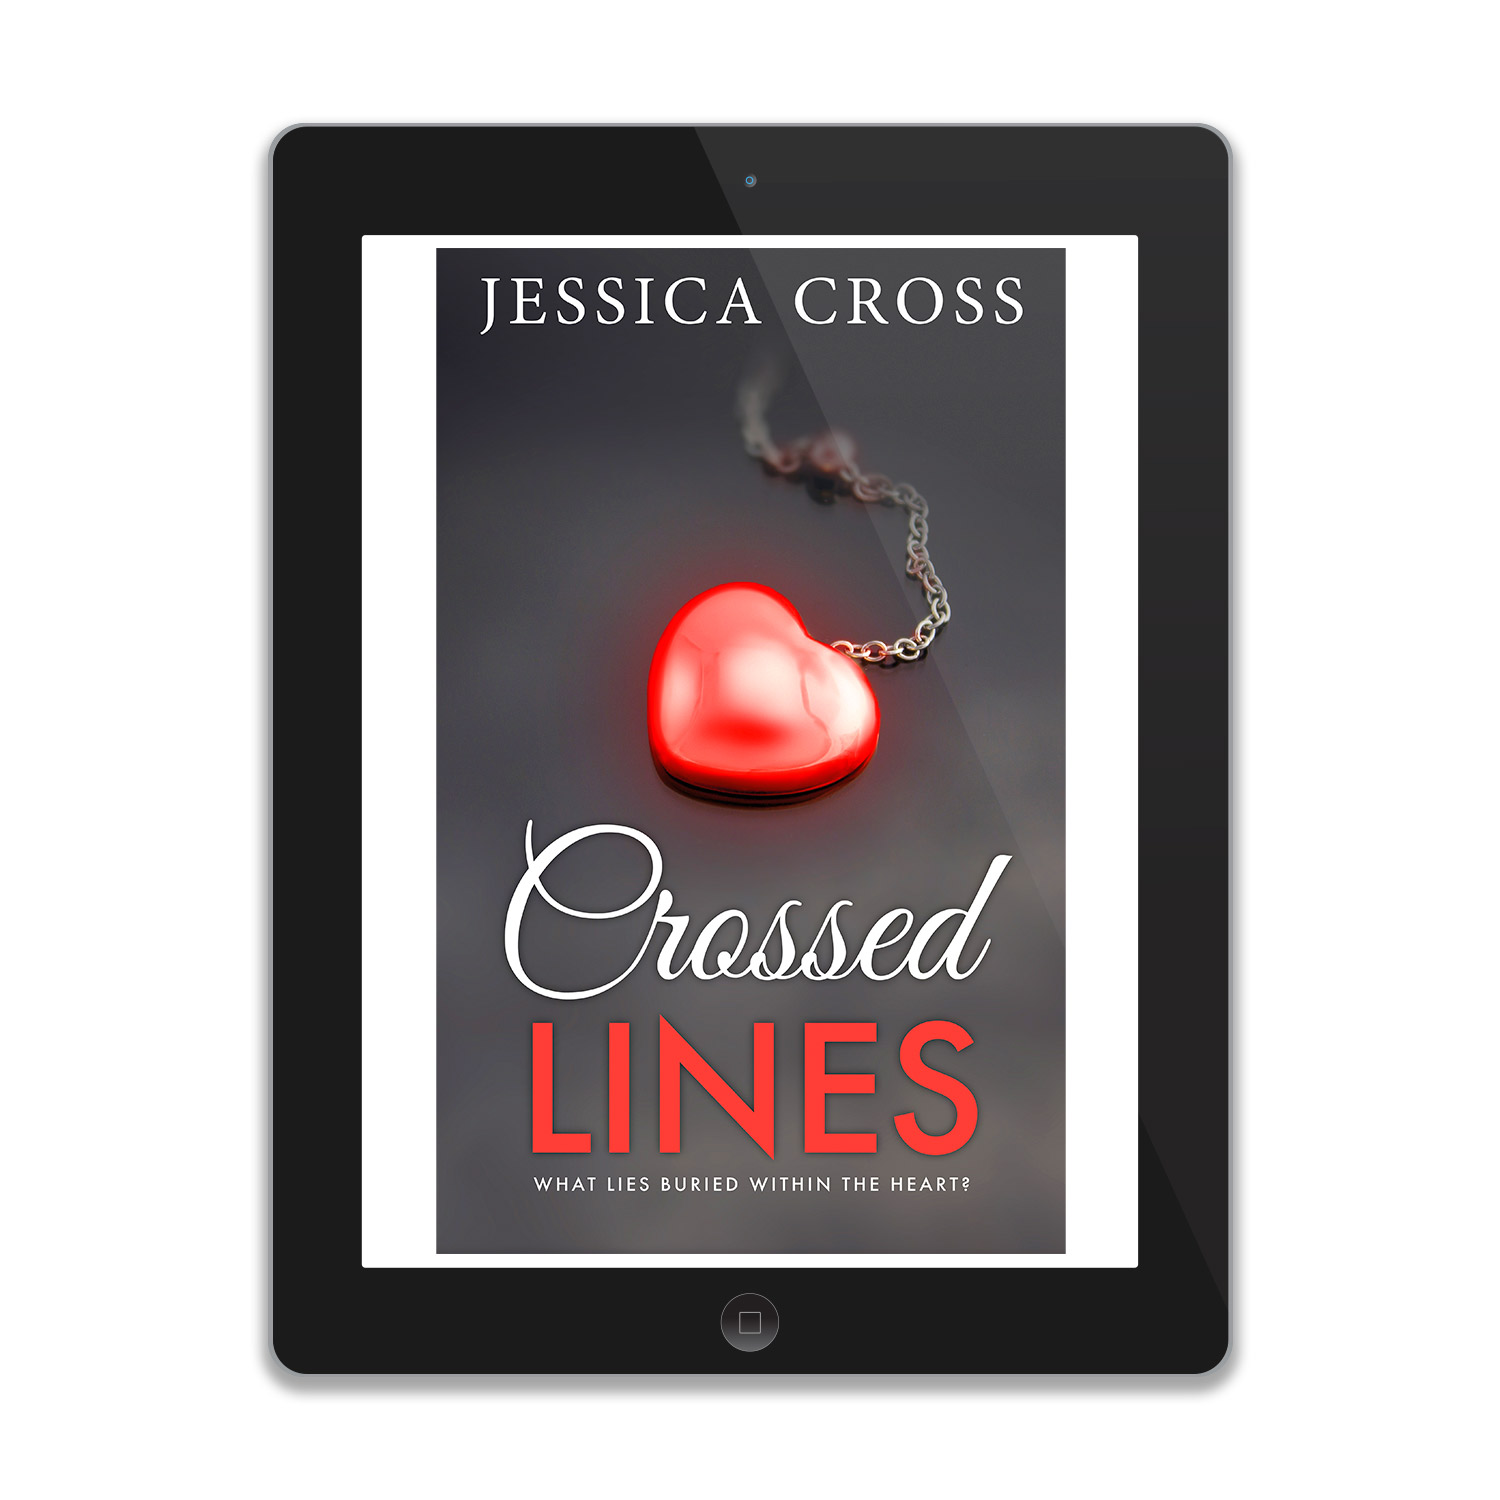 'Crossed Lines' is a dramatically sexy fiction, by Jessica Cross. The book cover and interior were designed by Mark Thomas, of coverness.com. To find out more about my book design services, please visit www.coverness.com.